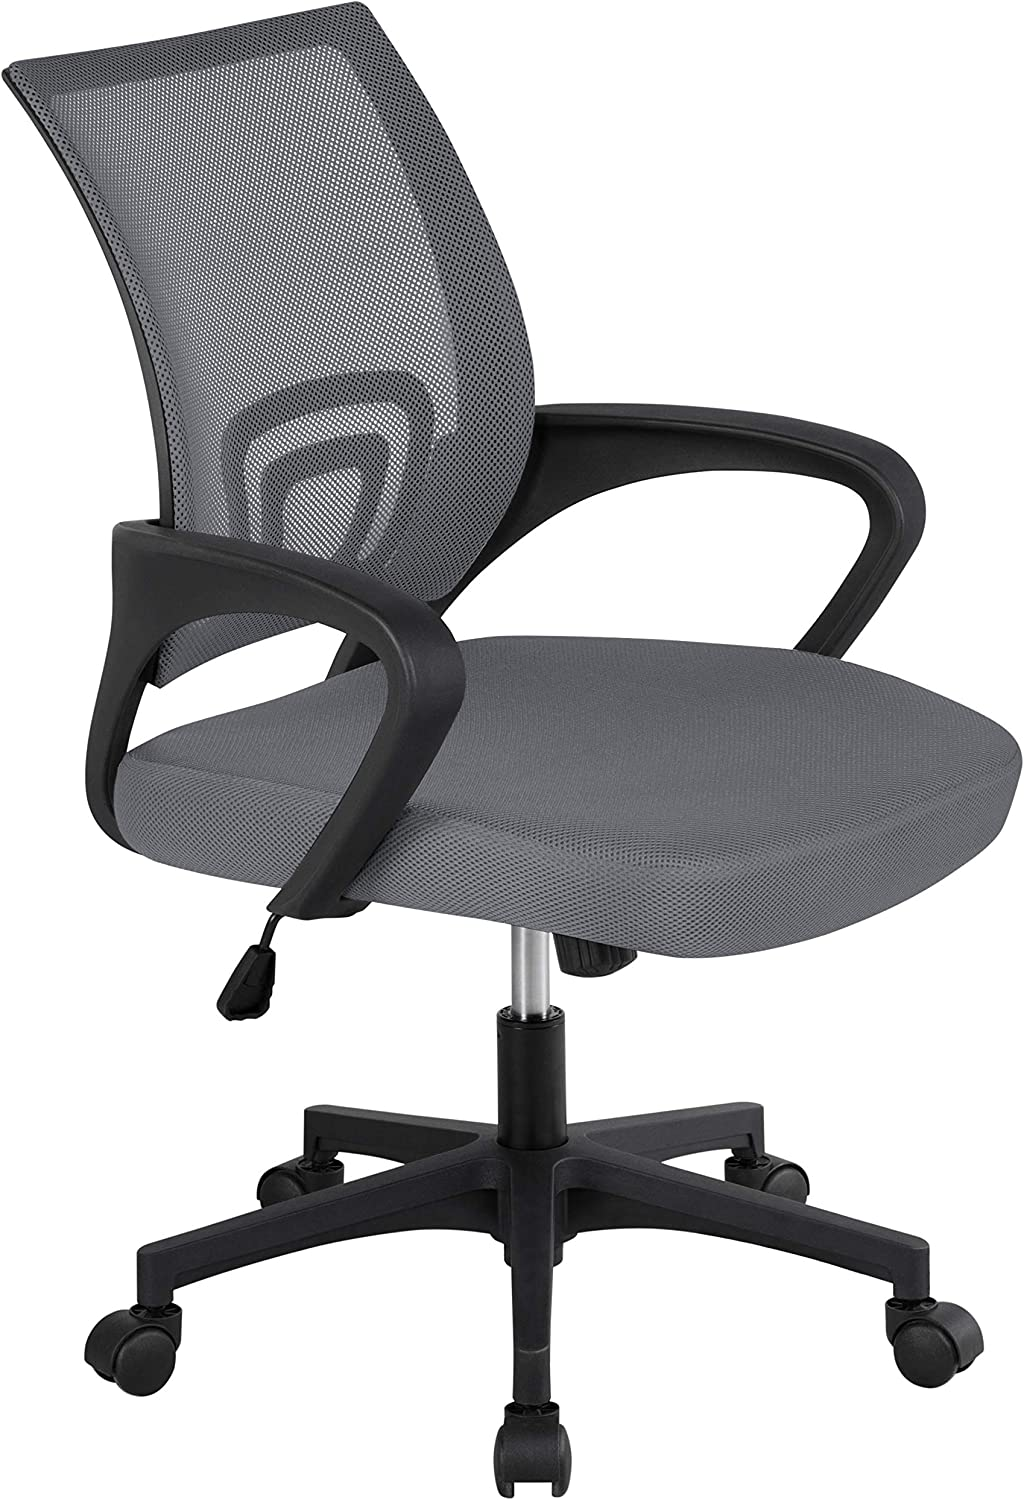 Topeakmart Mesh Desk Chair with Lumbar Support & 360° Rolling Casters, Mid Back Office Chairs for Reception Room Dark Gray